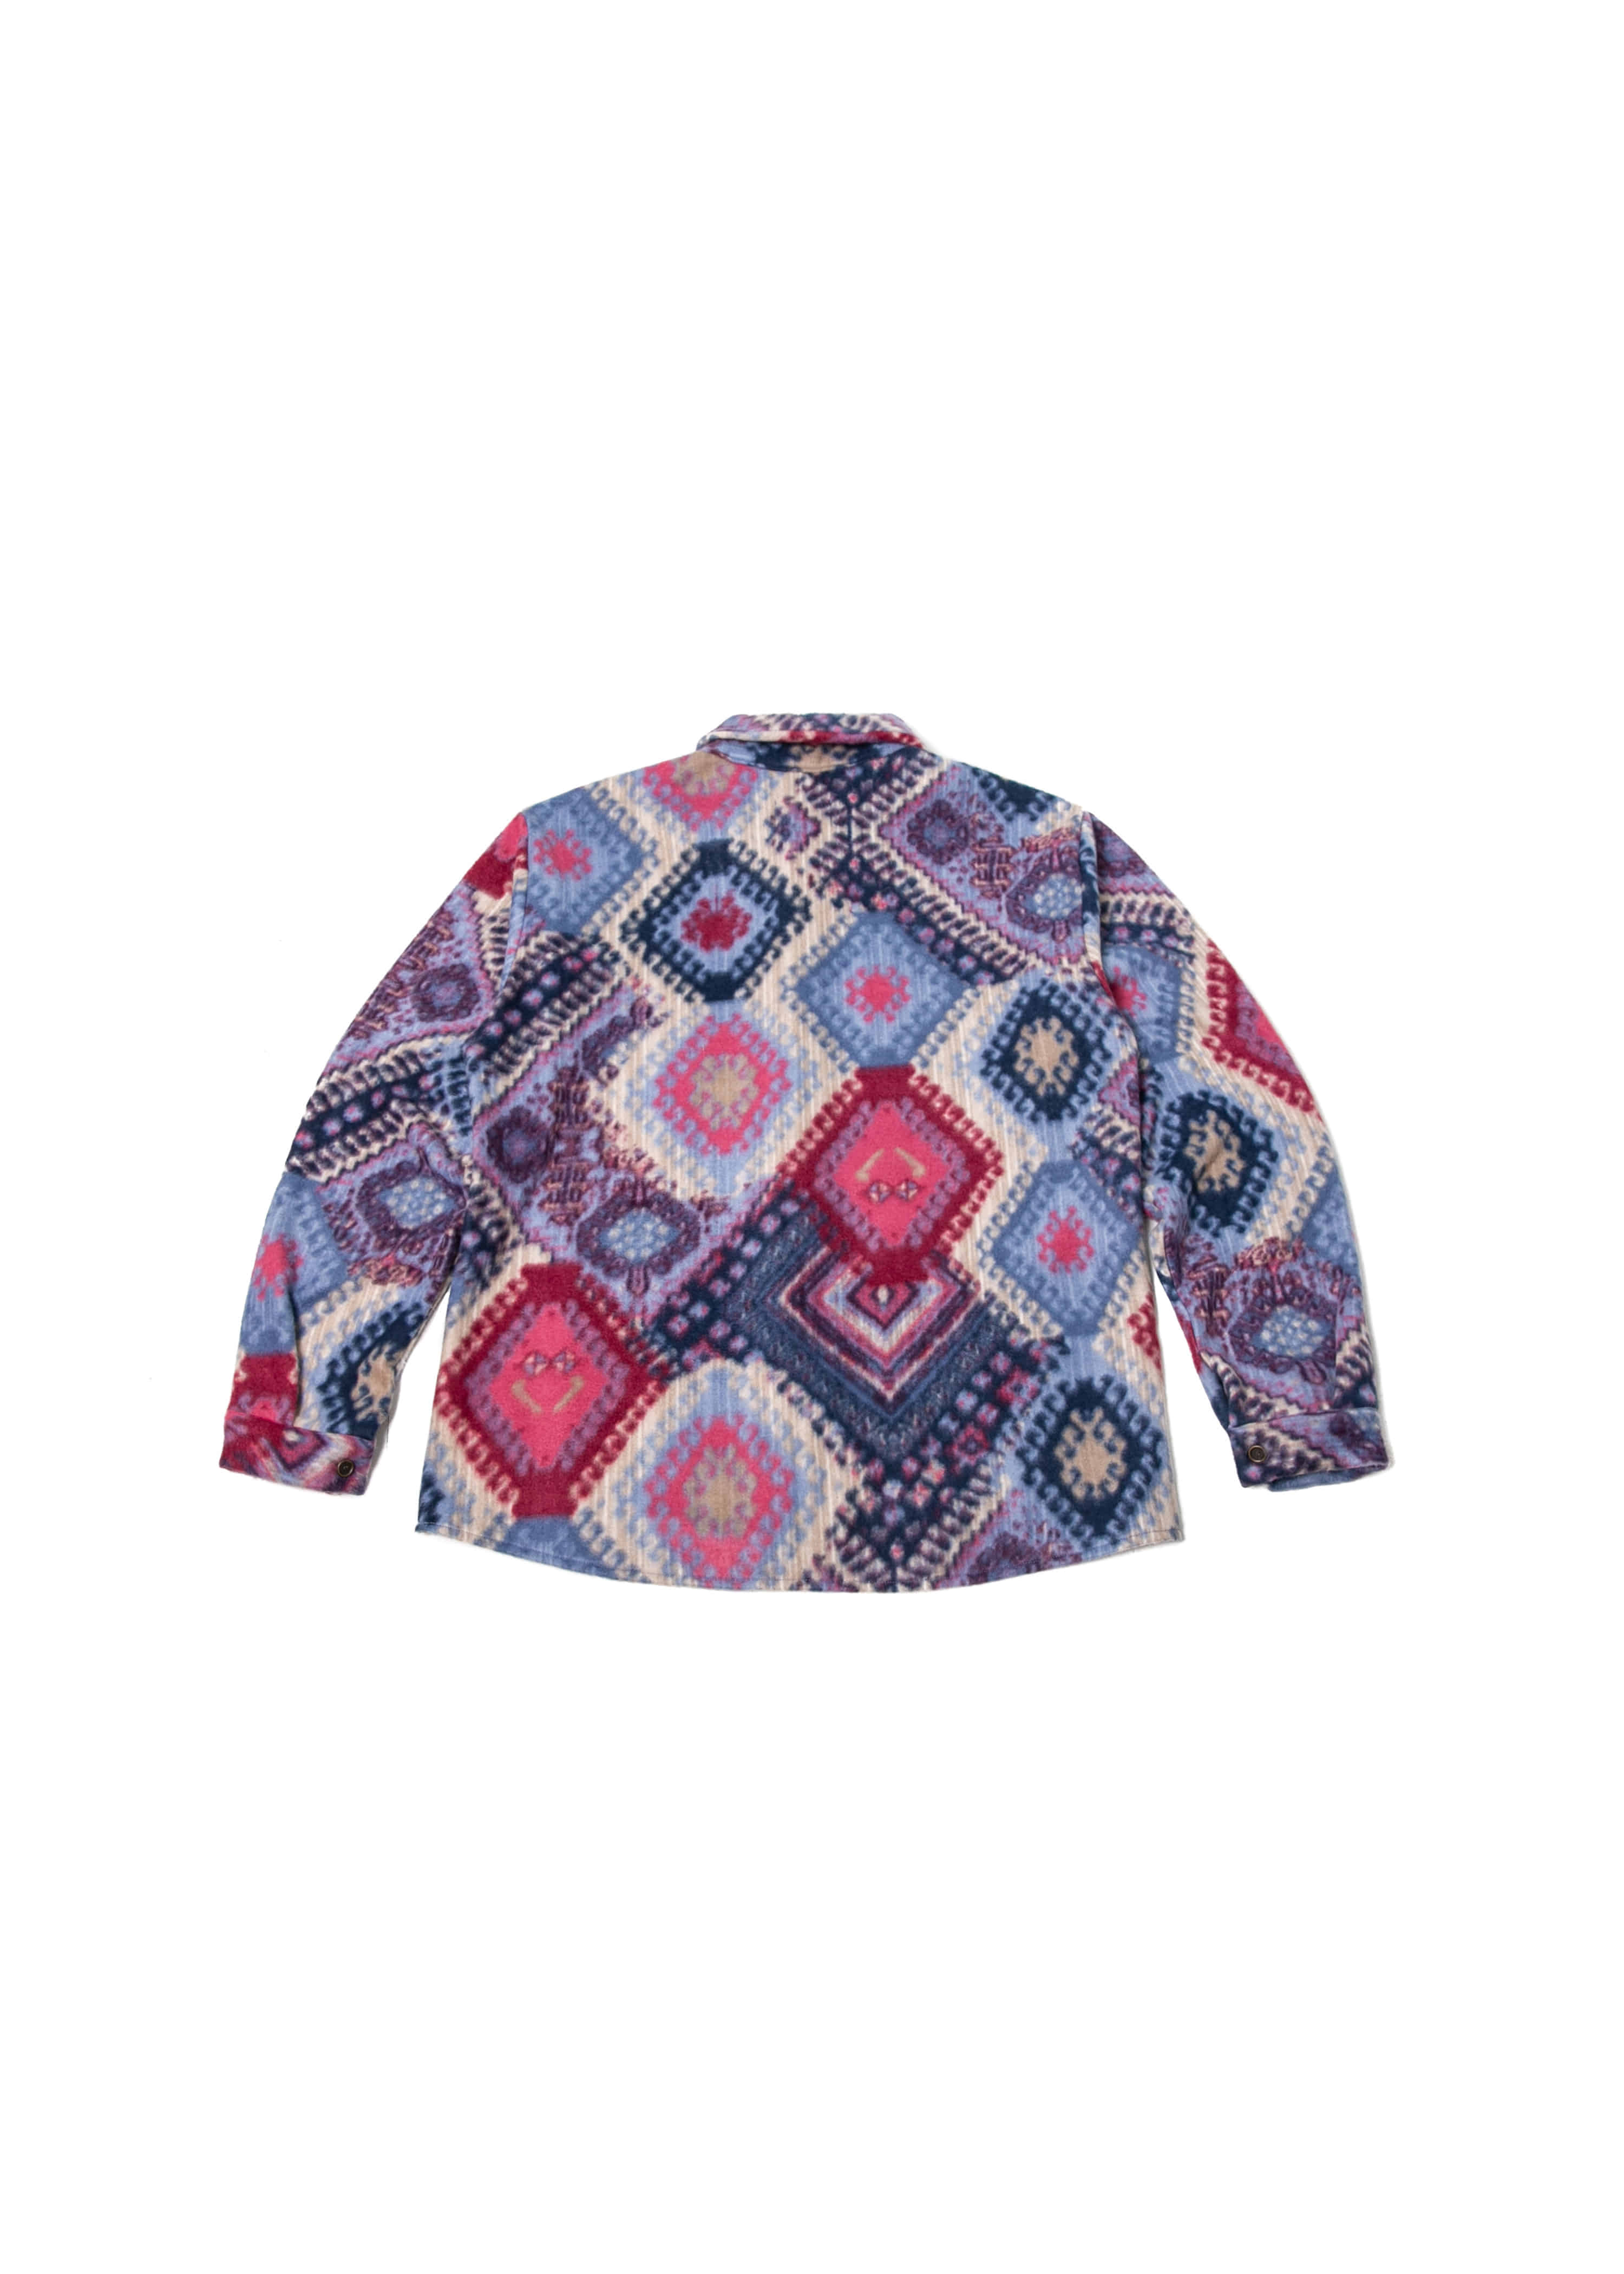 Ethnic Flannel Shirts Jacket - Blue